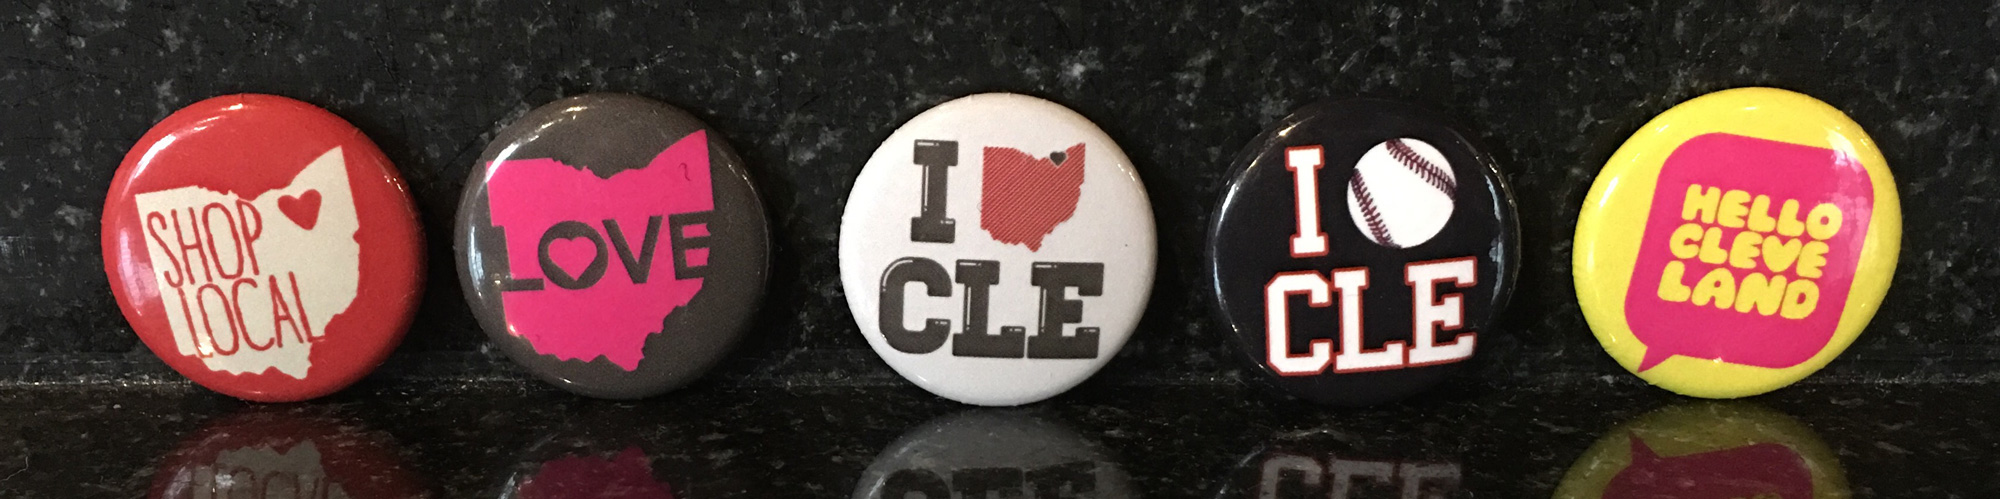 CLE Clothing 1 Inch Round Buttons